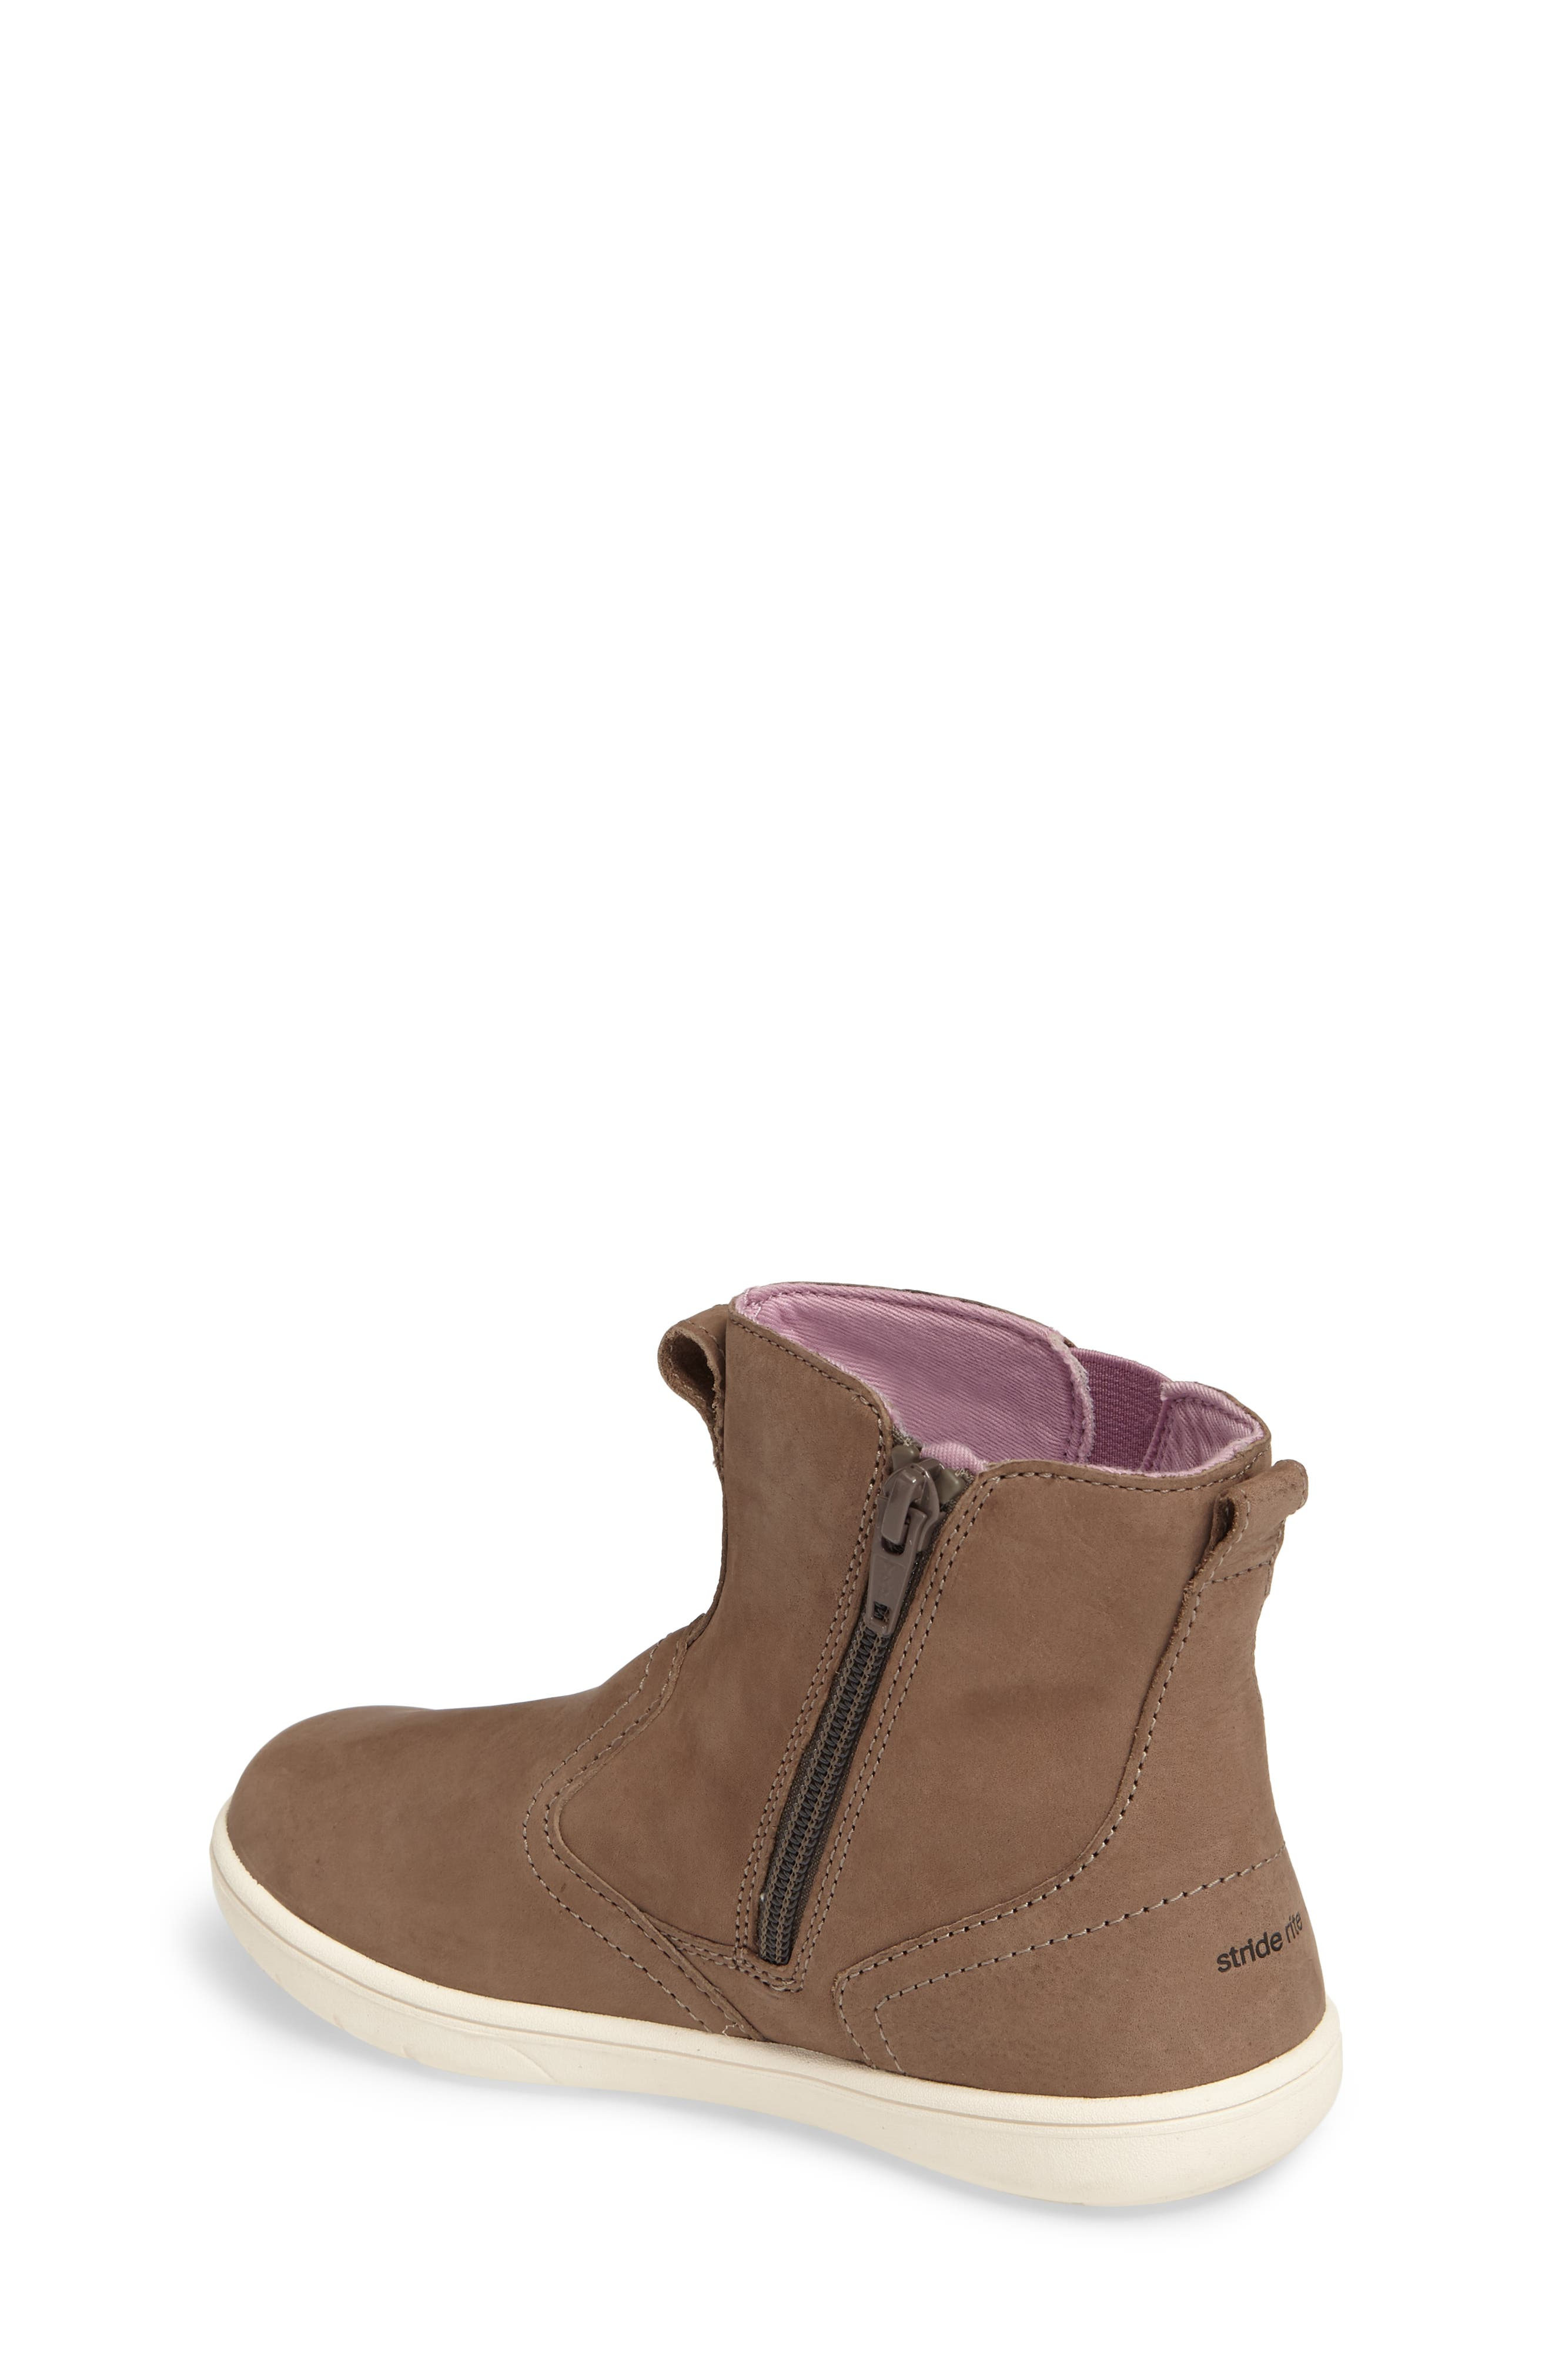 SRtech<sup>™</sup> Maxine Fringed Bootie,                             Alternate thumbnail 2, color,